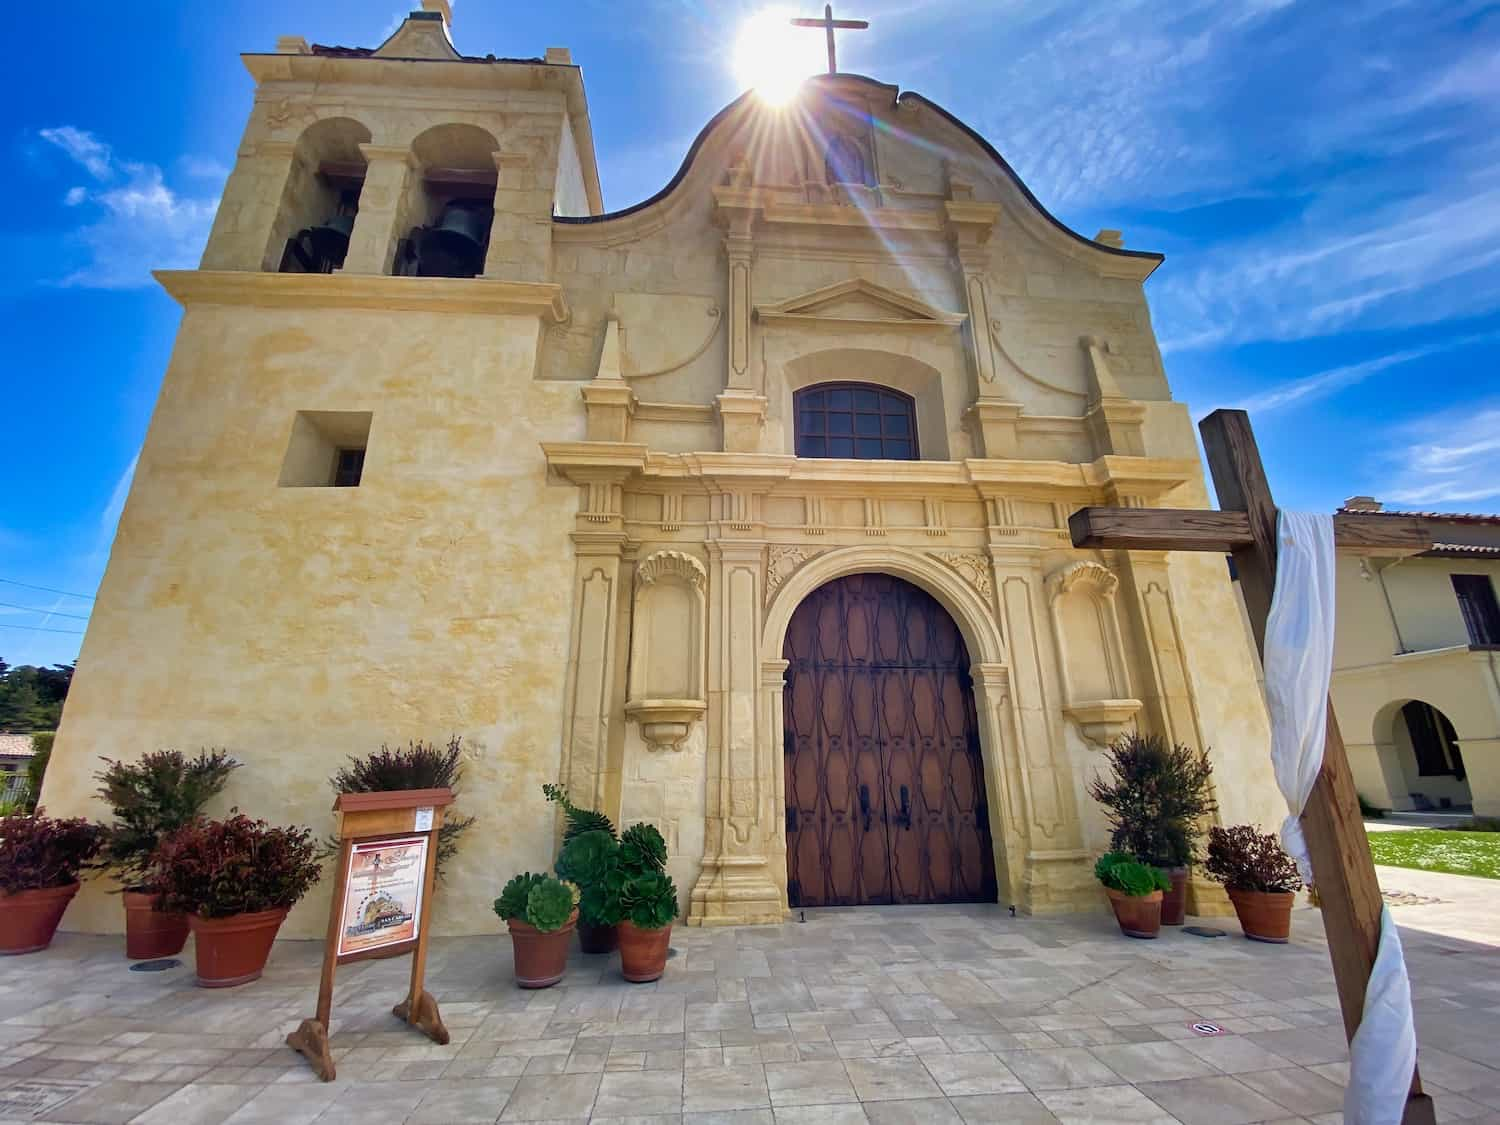 The Mission in Monterey